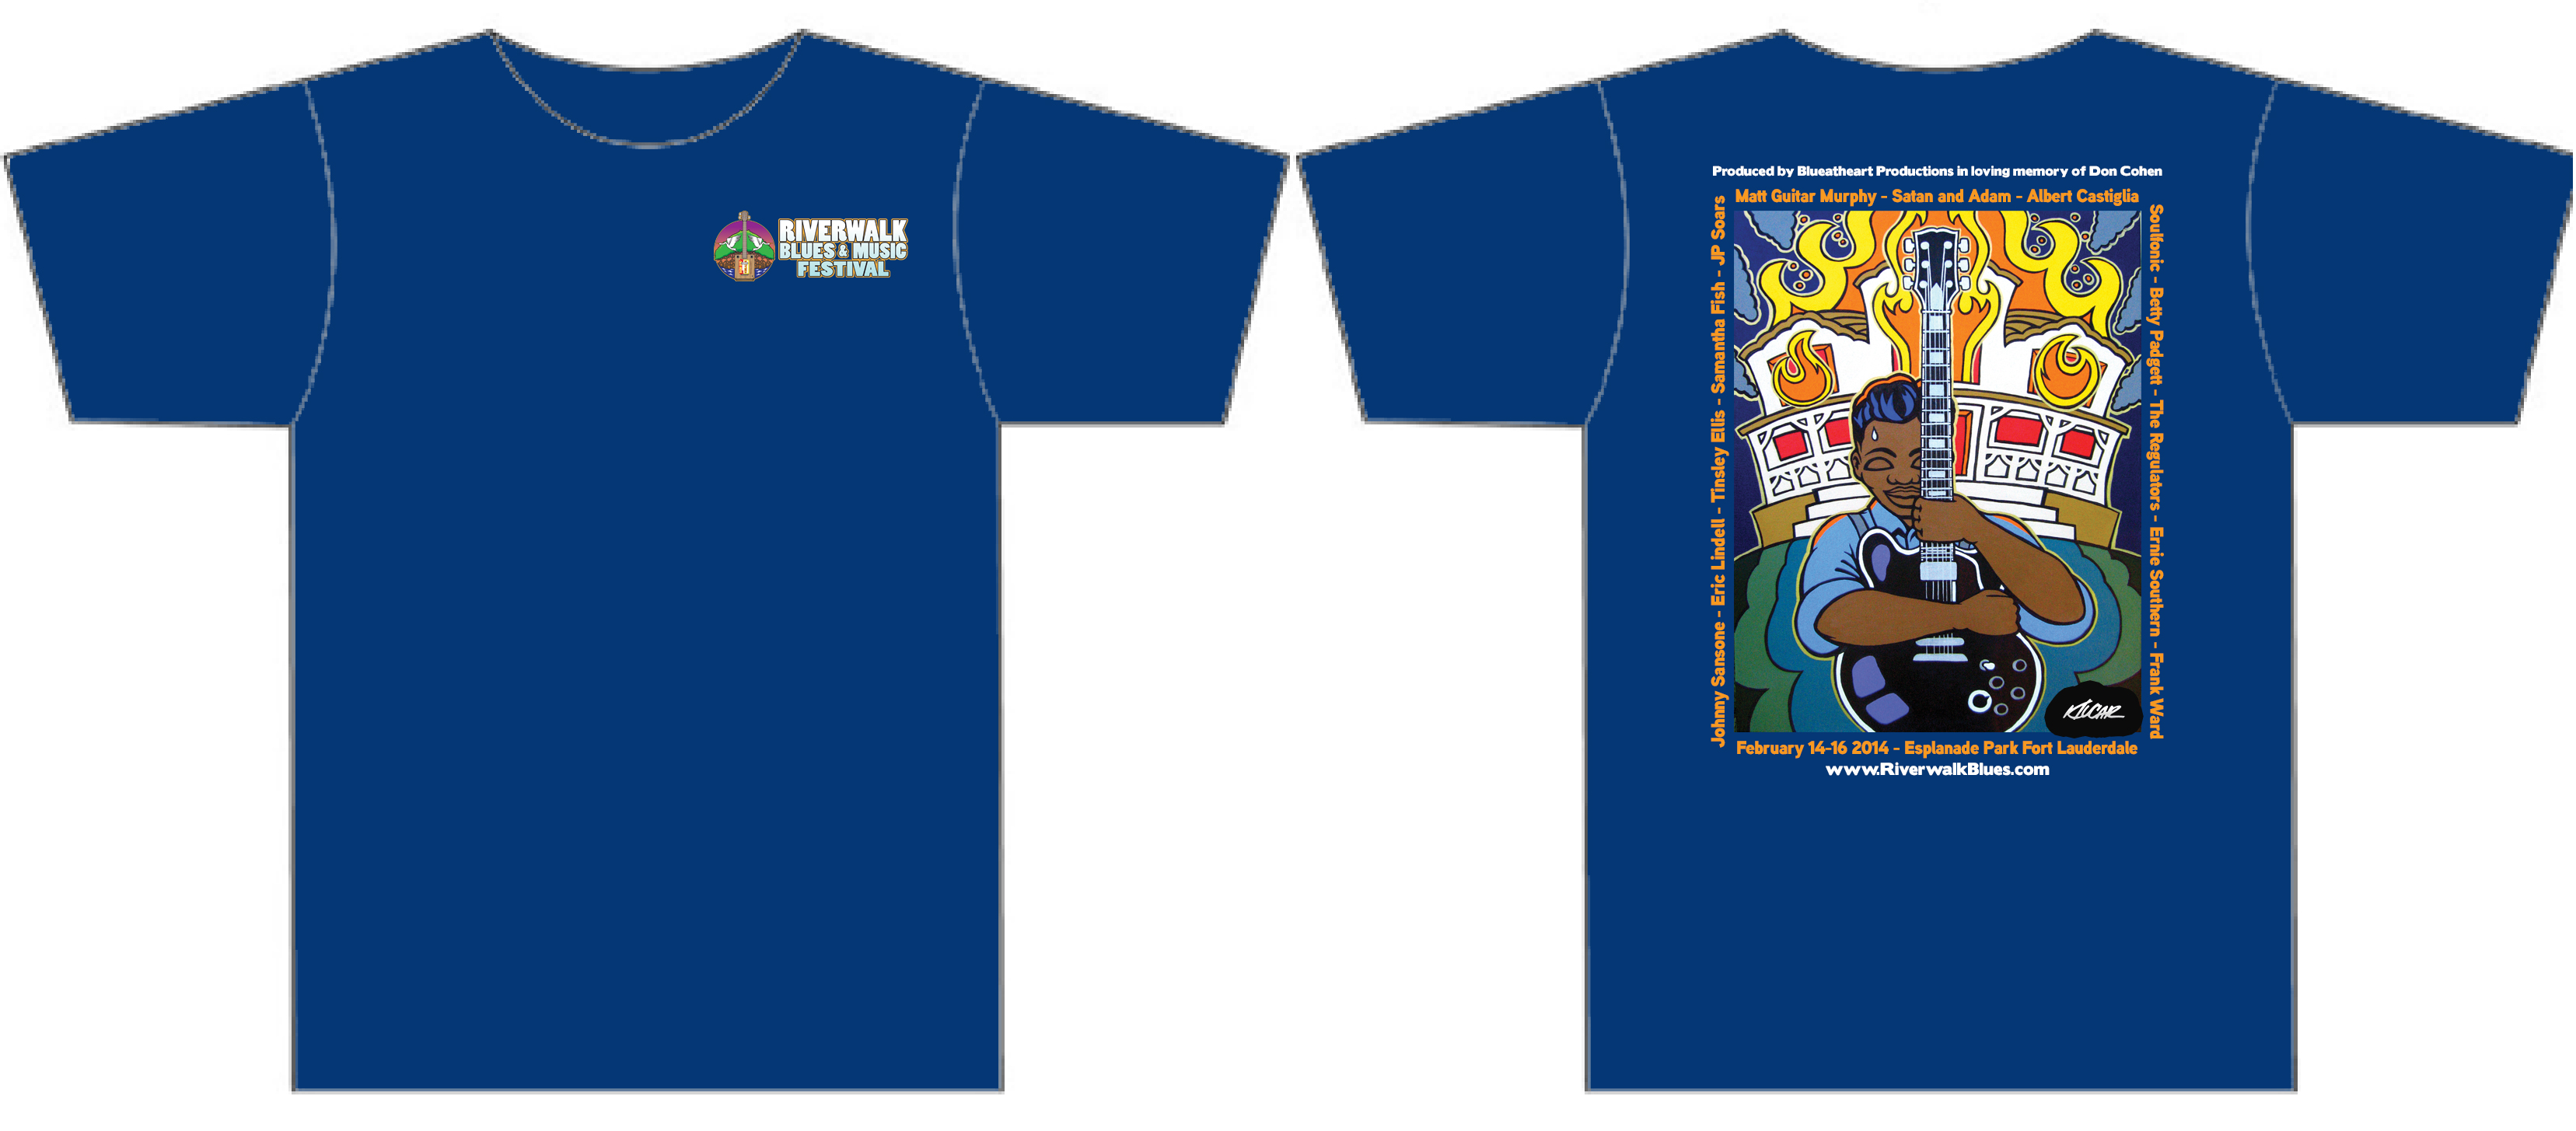 24 Riverwalk Blues Festival T-Shirt